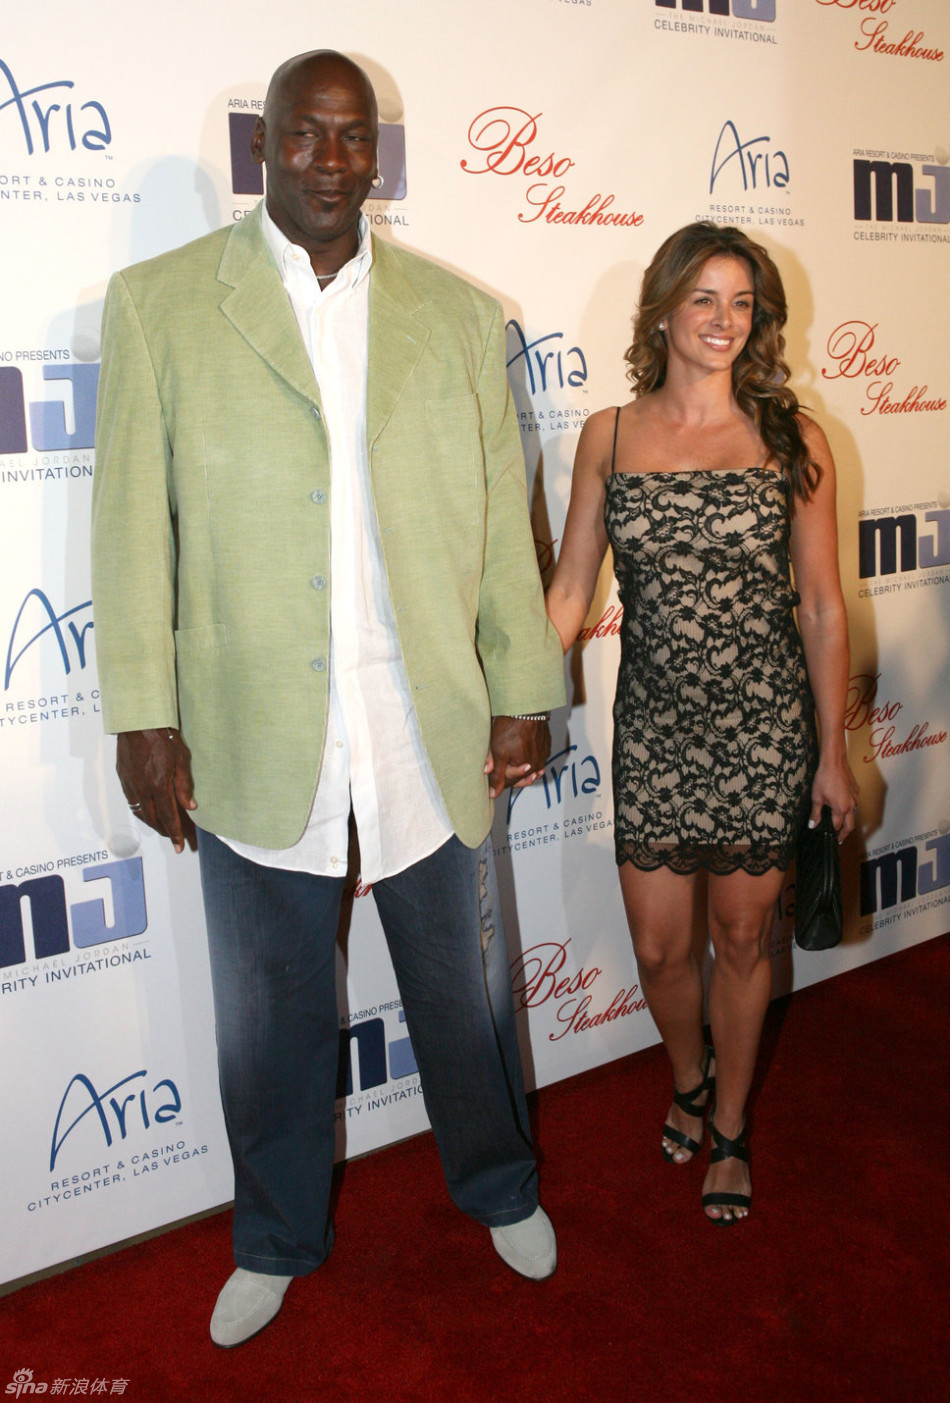 Who is lebron james dating now 2